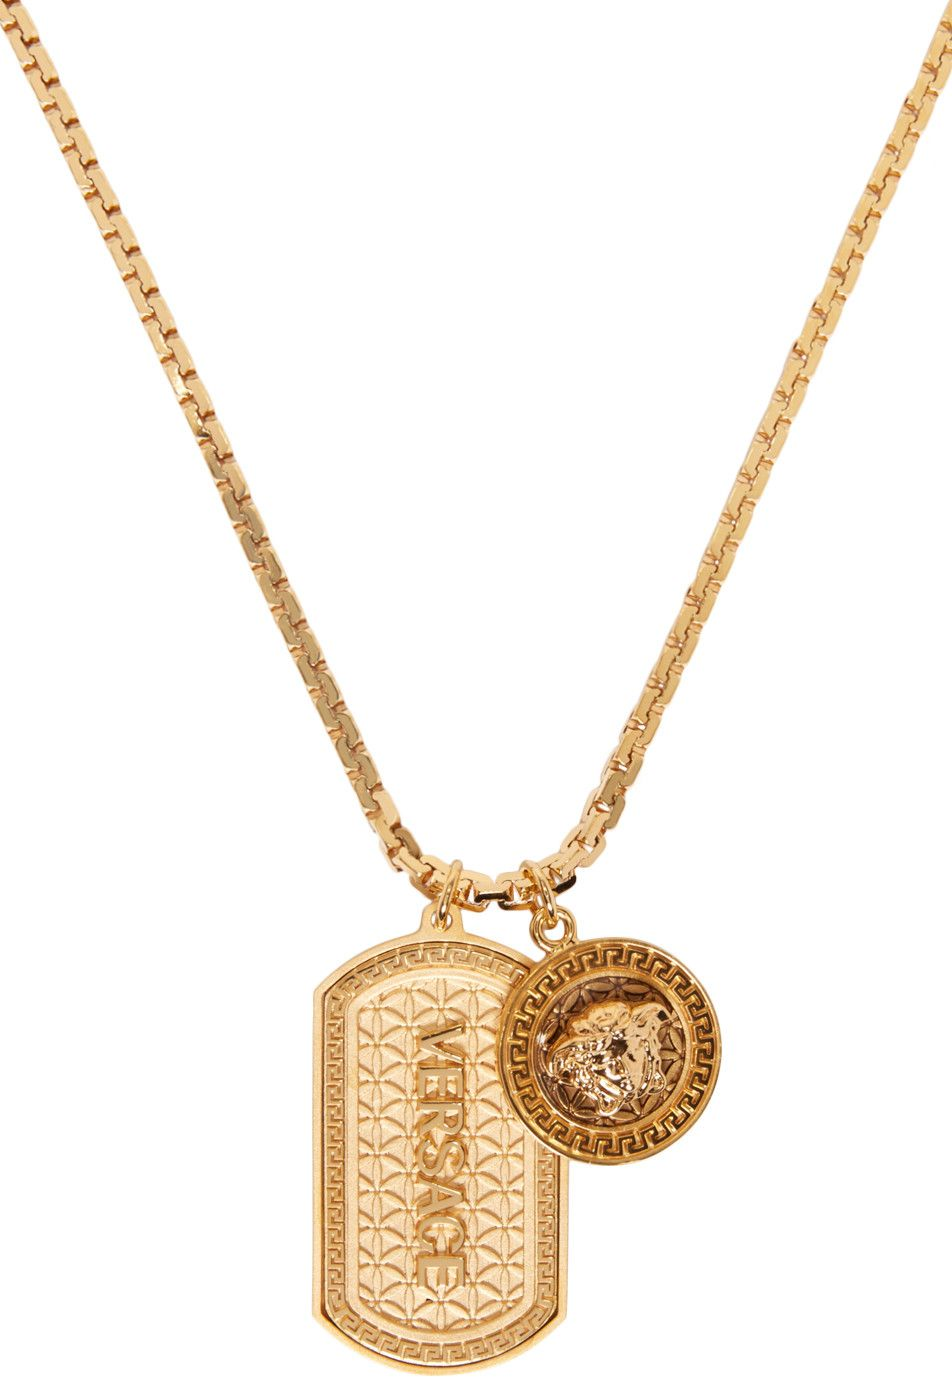 Versace Gold Dog Tag Necklace Trends Pinterest Versace gold